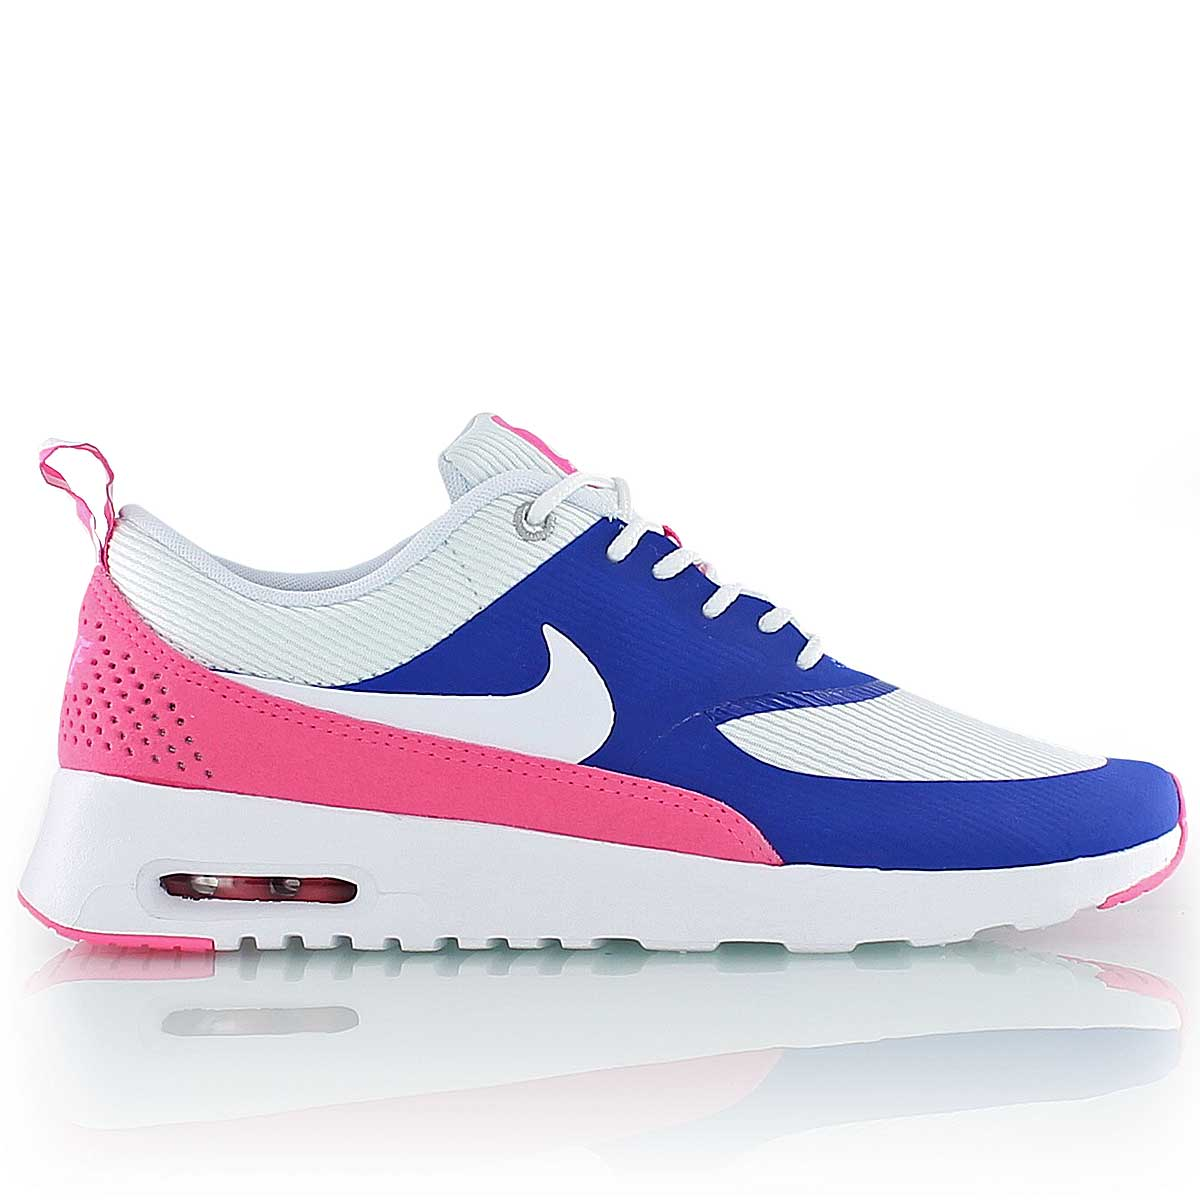 air max thea bleu rose Outlet Vente Authentique - kiwie.fr